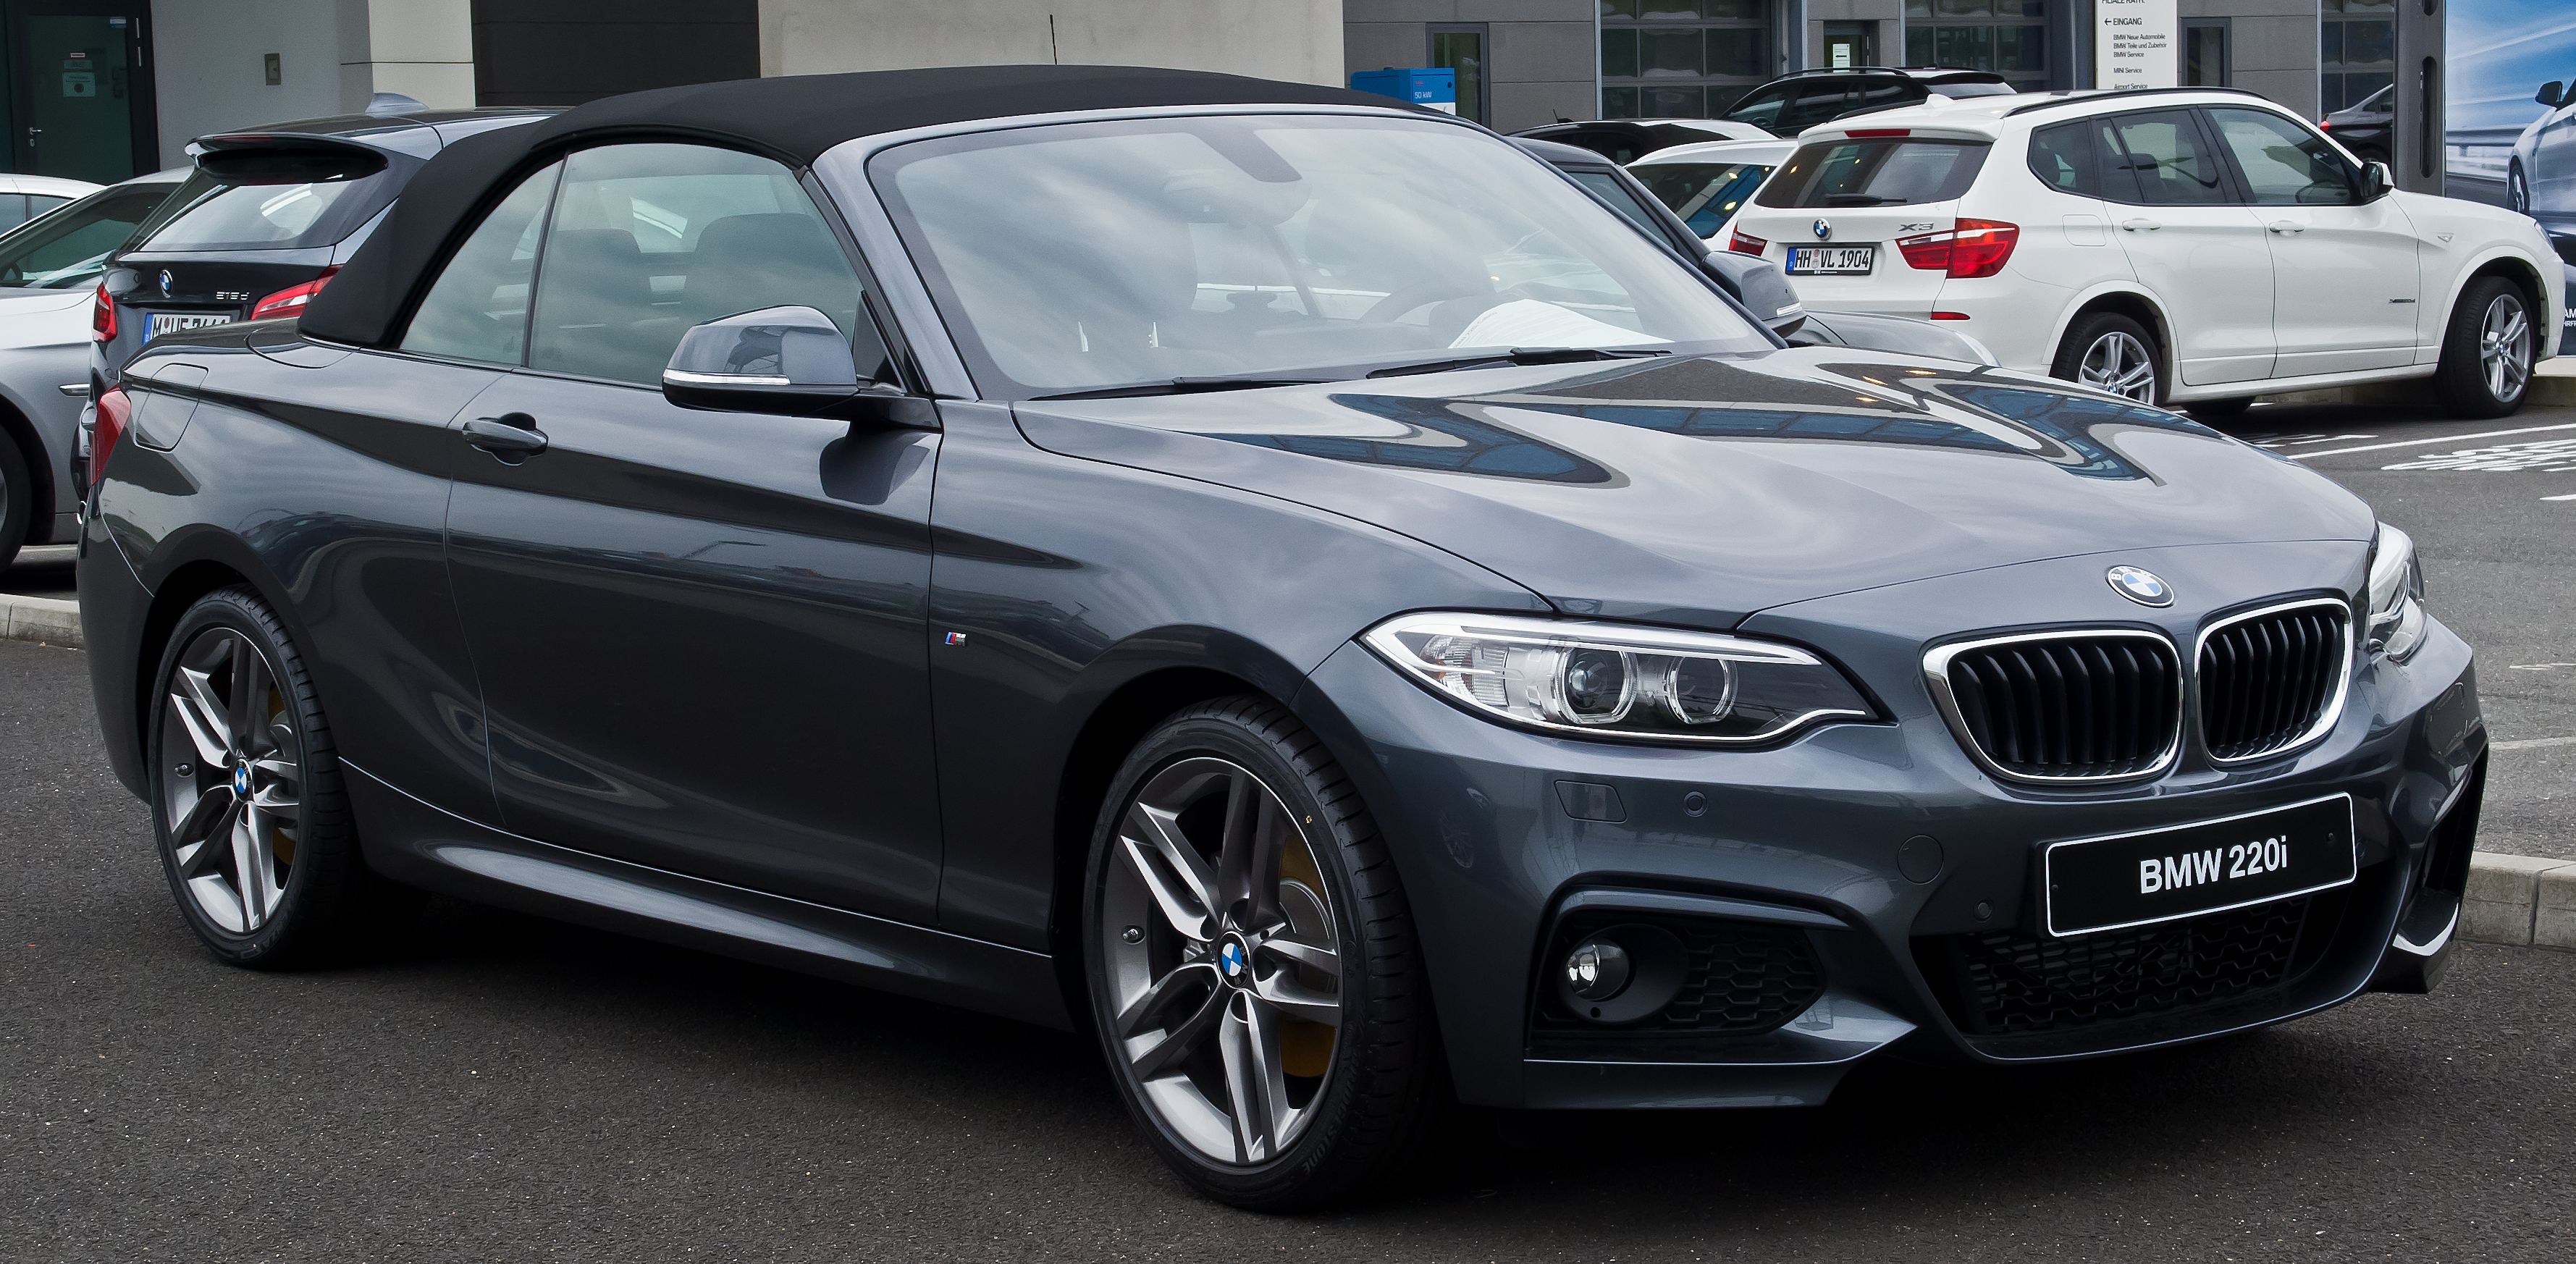 Cabriolet Convertible Bmw 2 Series